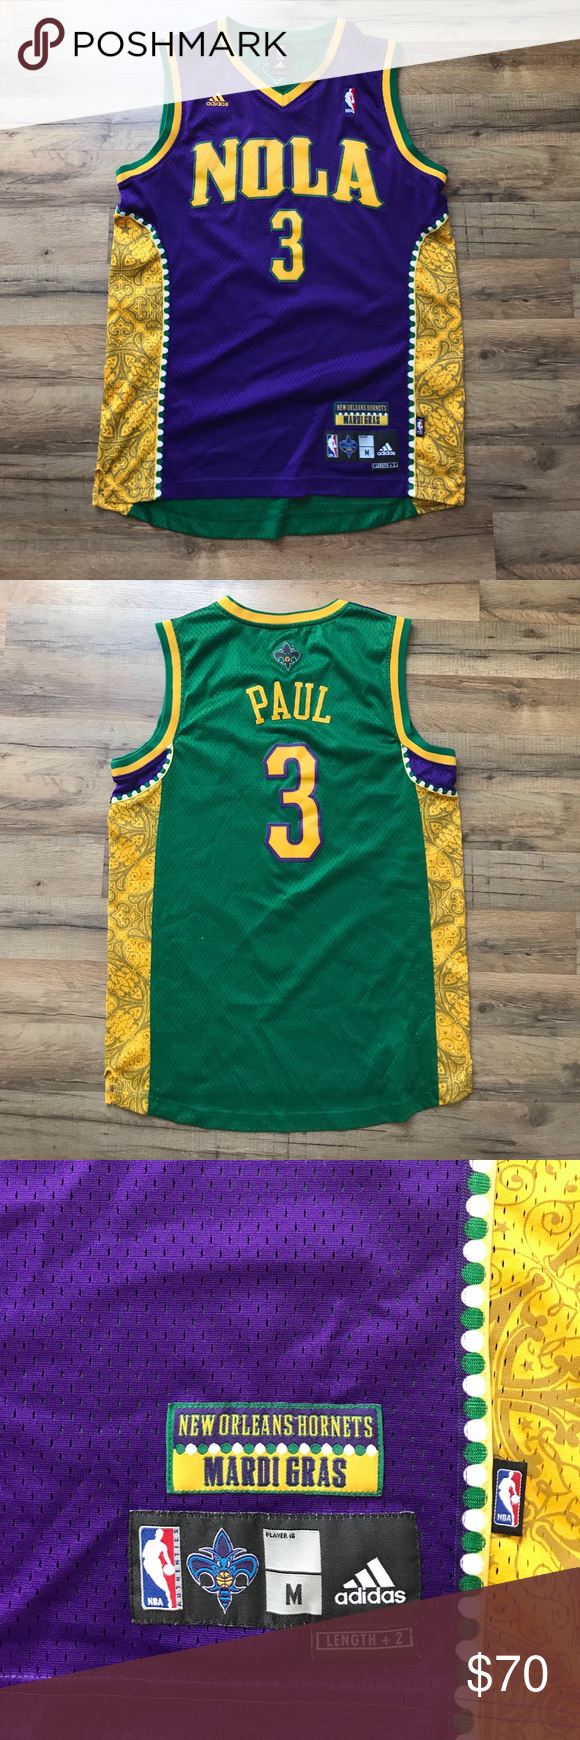 64293273cd7 ... official chris paul nola adidas mardi gras jersey chris paul limited  mardi gras jersey. lightly